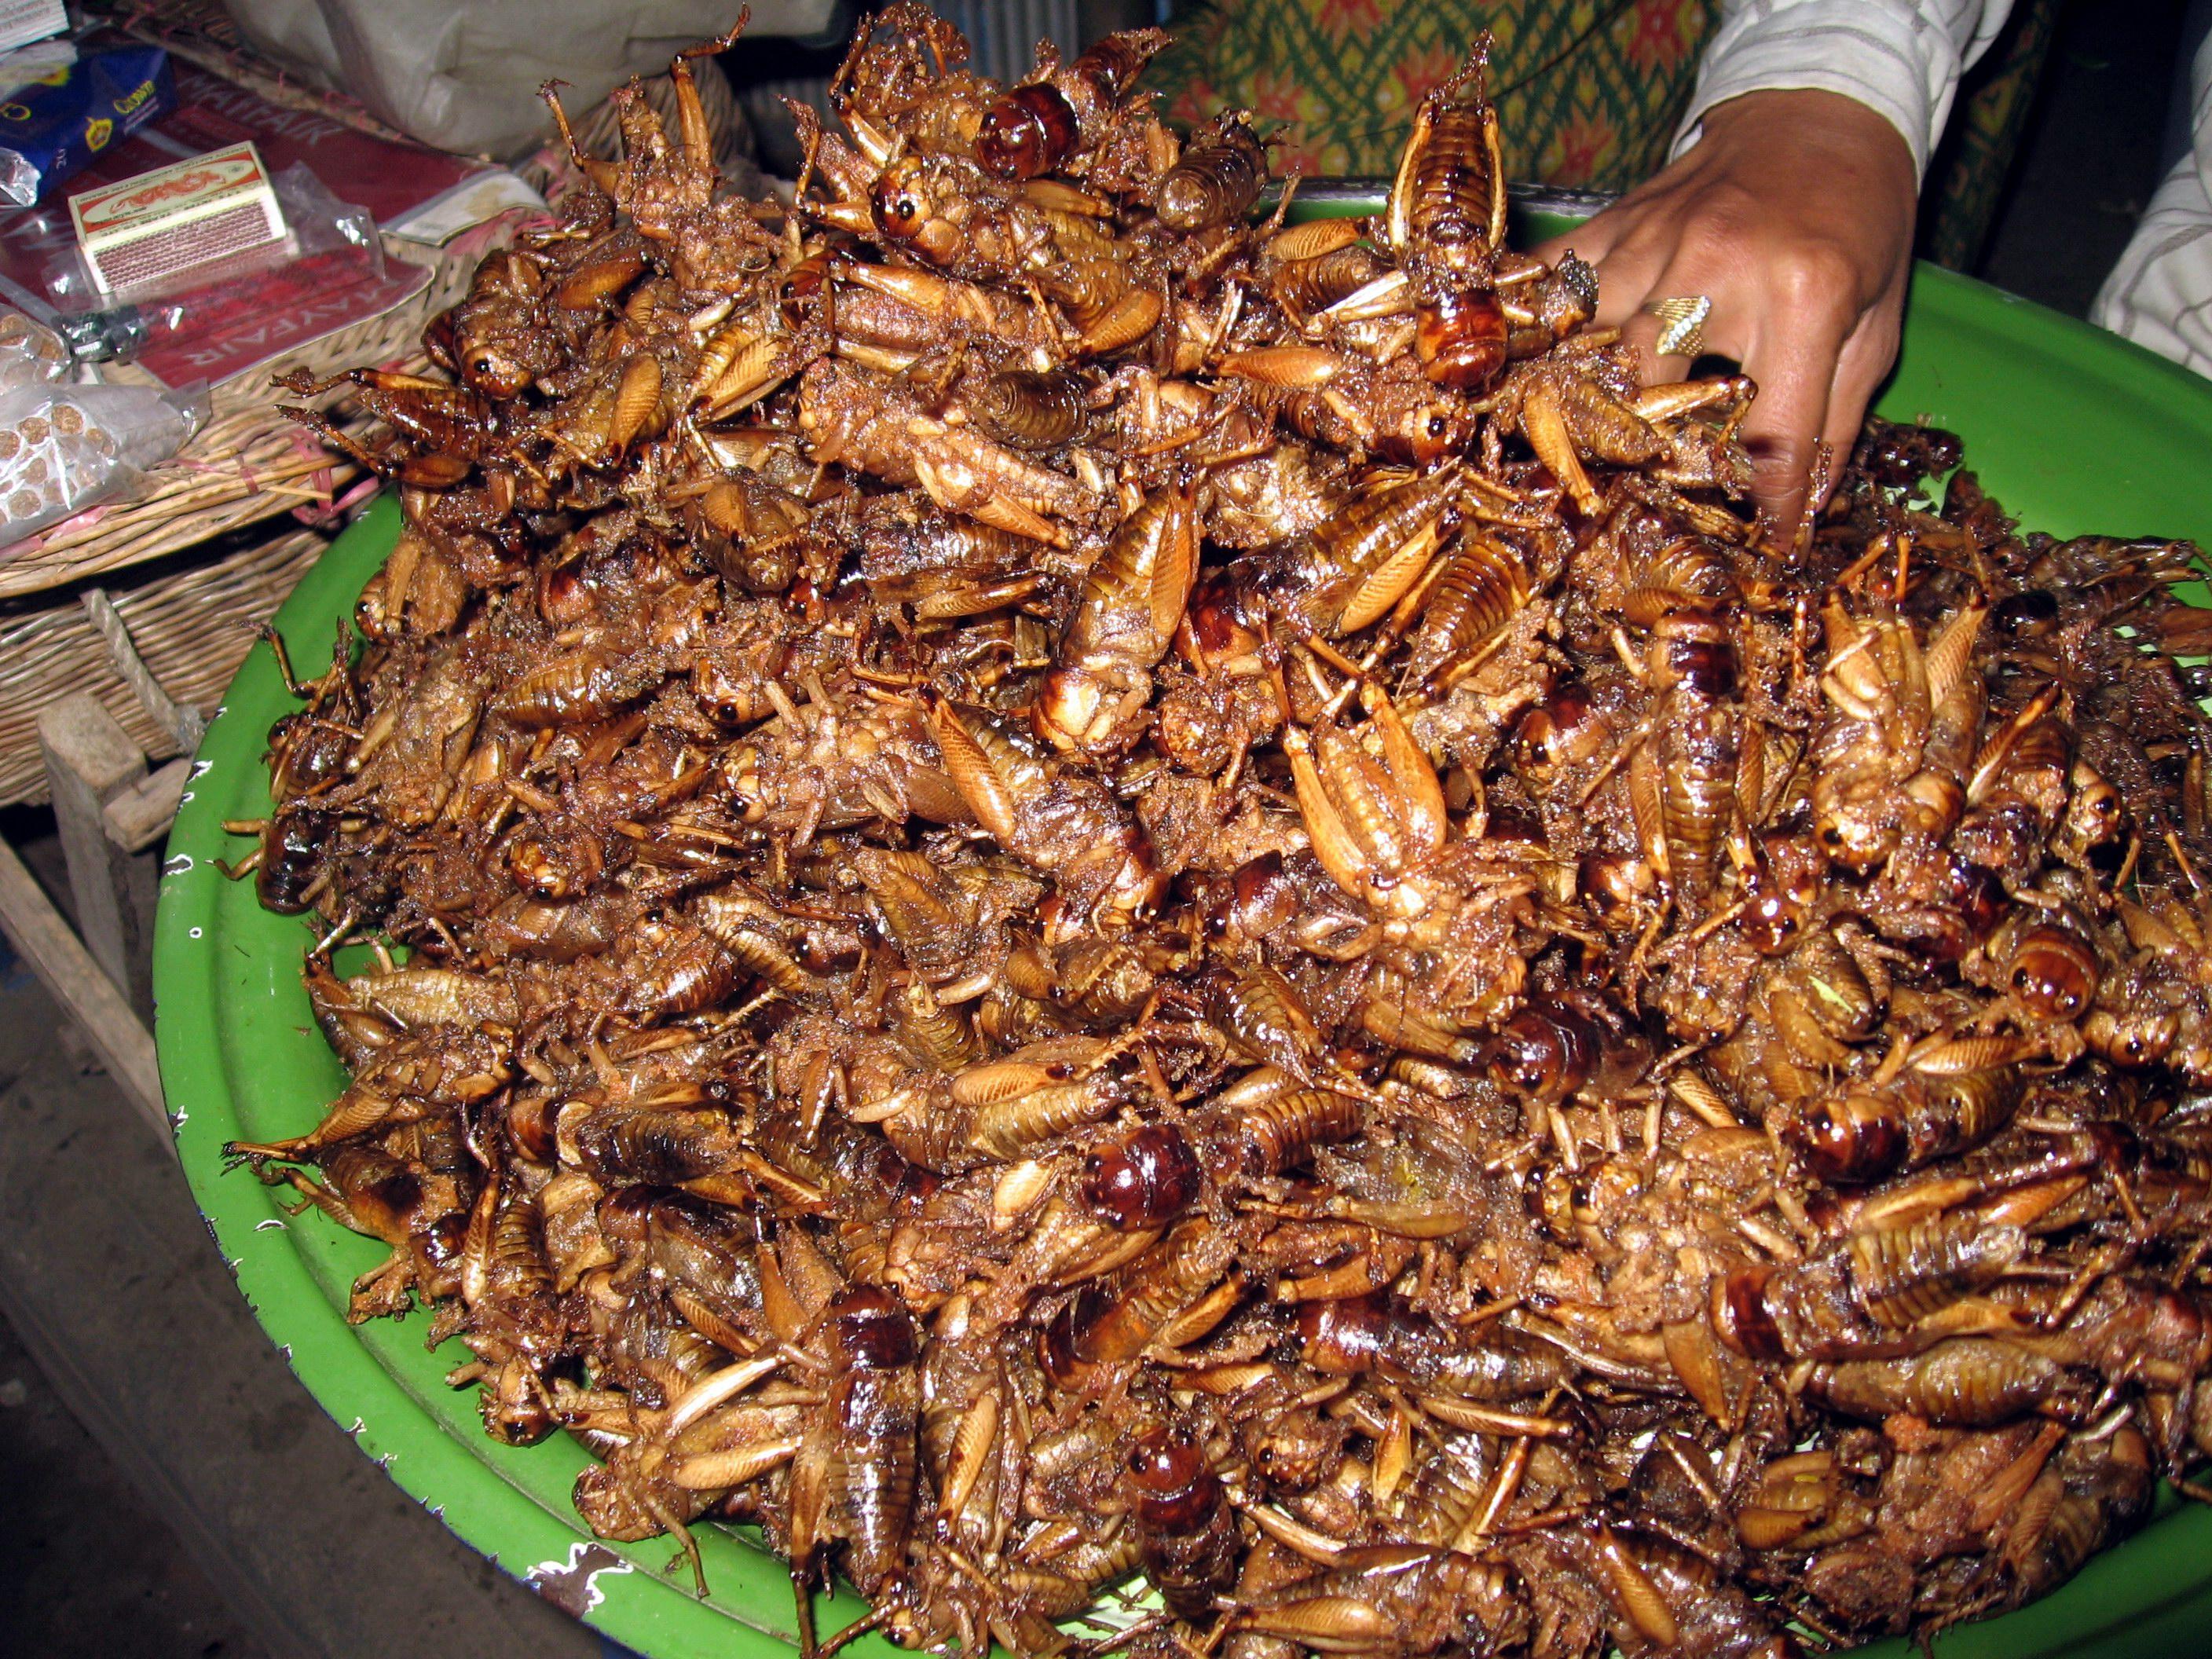 File:Fried crickets in Cambodia.jpg